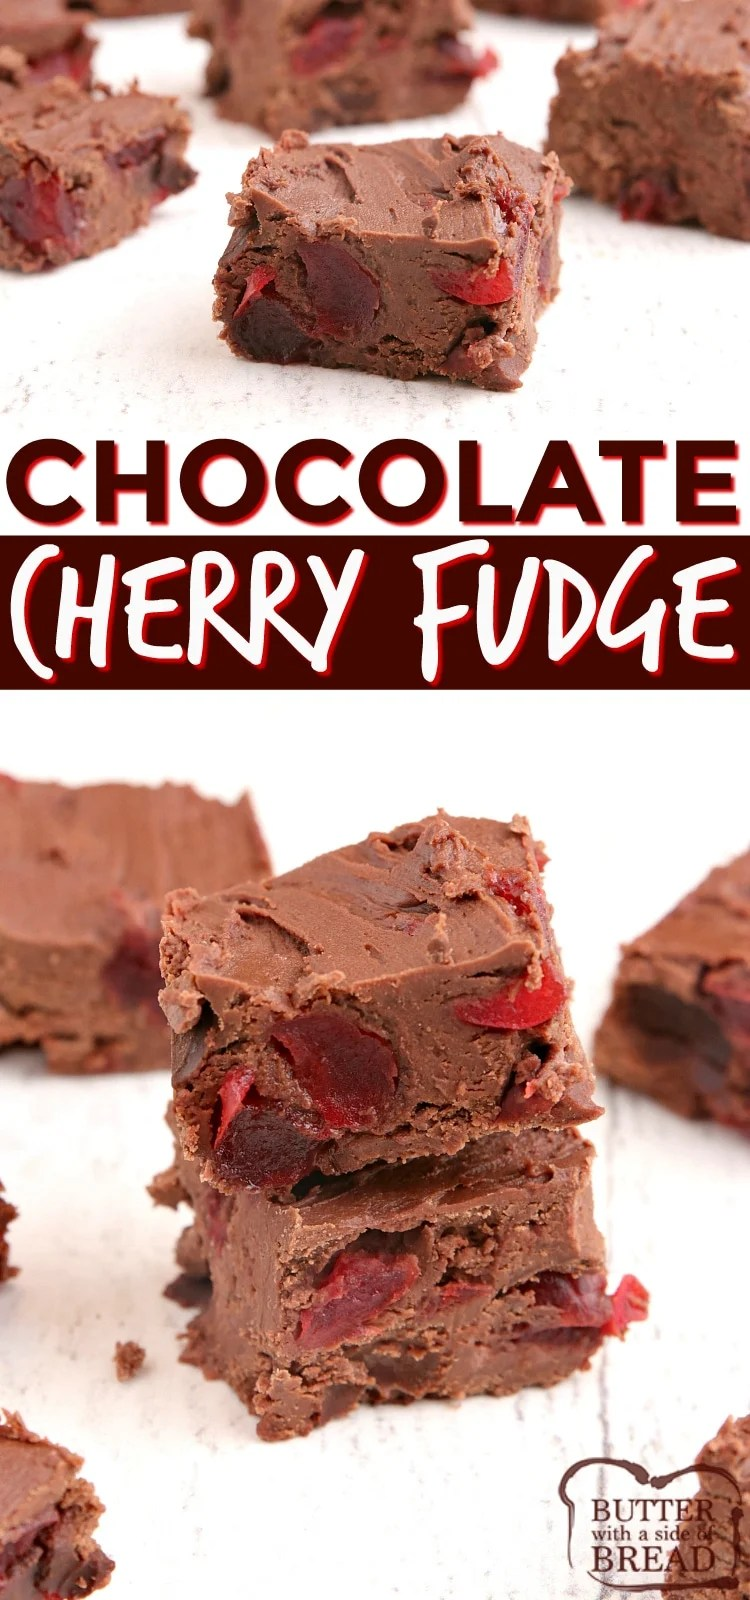 Easy Cherry Chocolate Fudge made with three ingredients in the microwave in less than 3 minutes! Easy fudge recipe ever with tons of cherry and chocolate flavor - no boiling or candy thermometers needed.